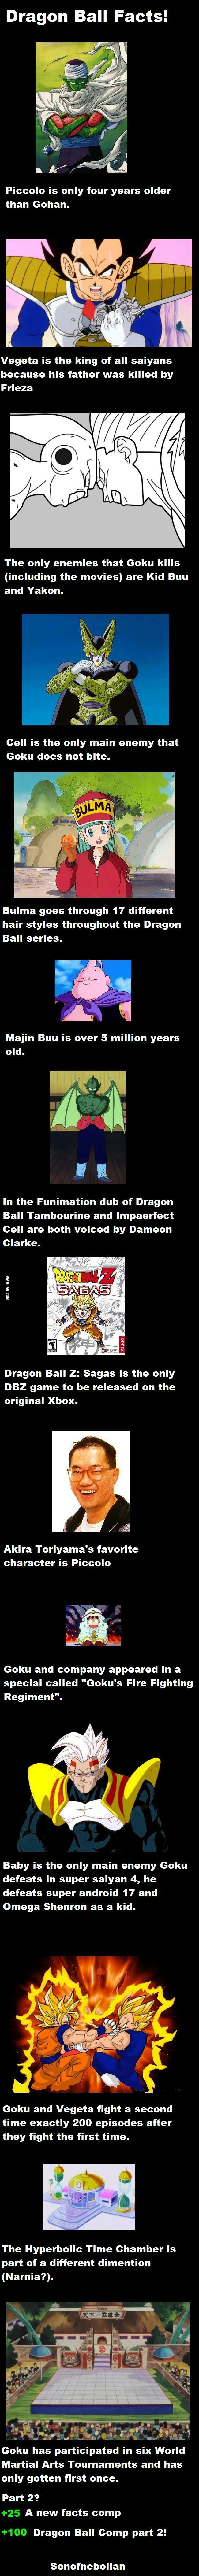 Dragon Ball Fact